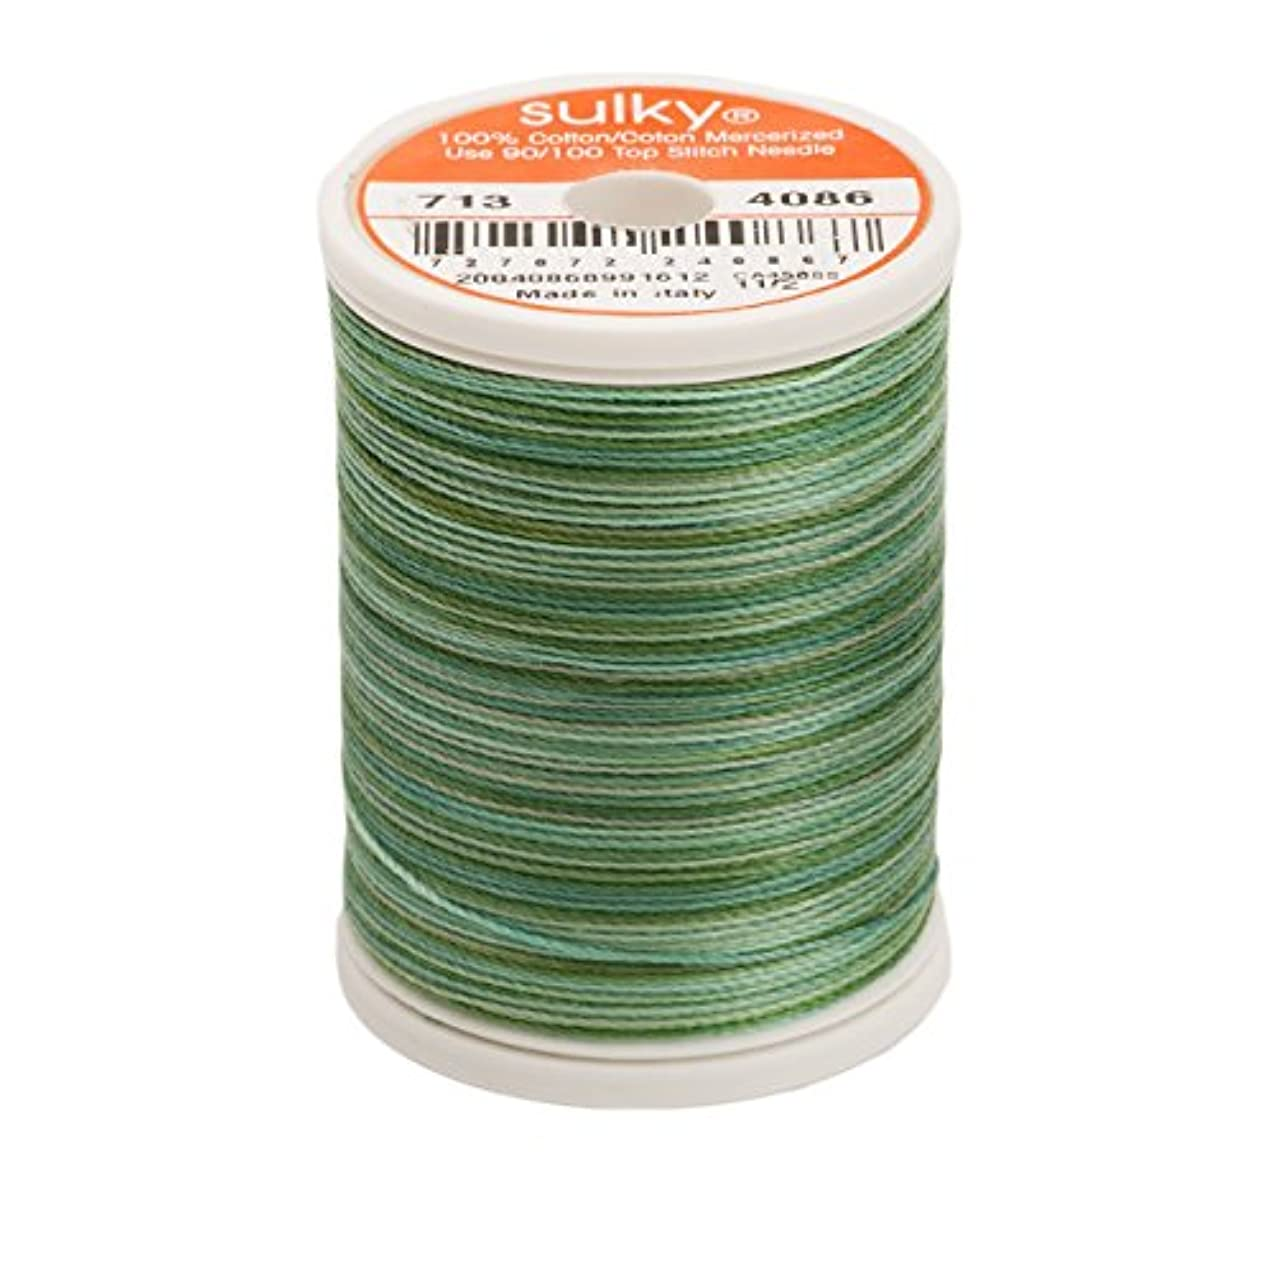 Sulky 713-4086 12-Weight Cotton Blendable Thread, 330-Yard, Cactus